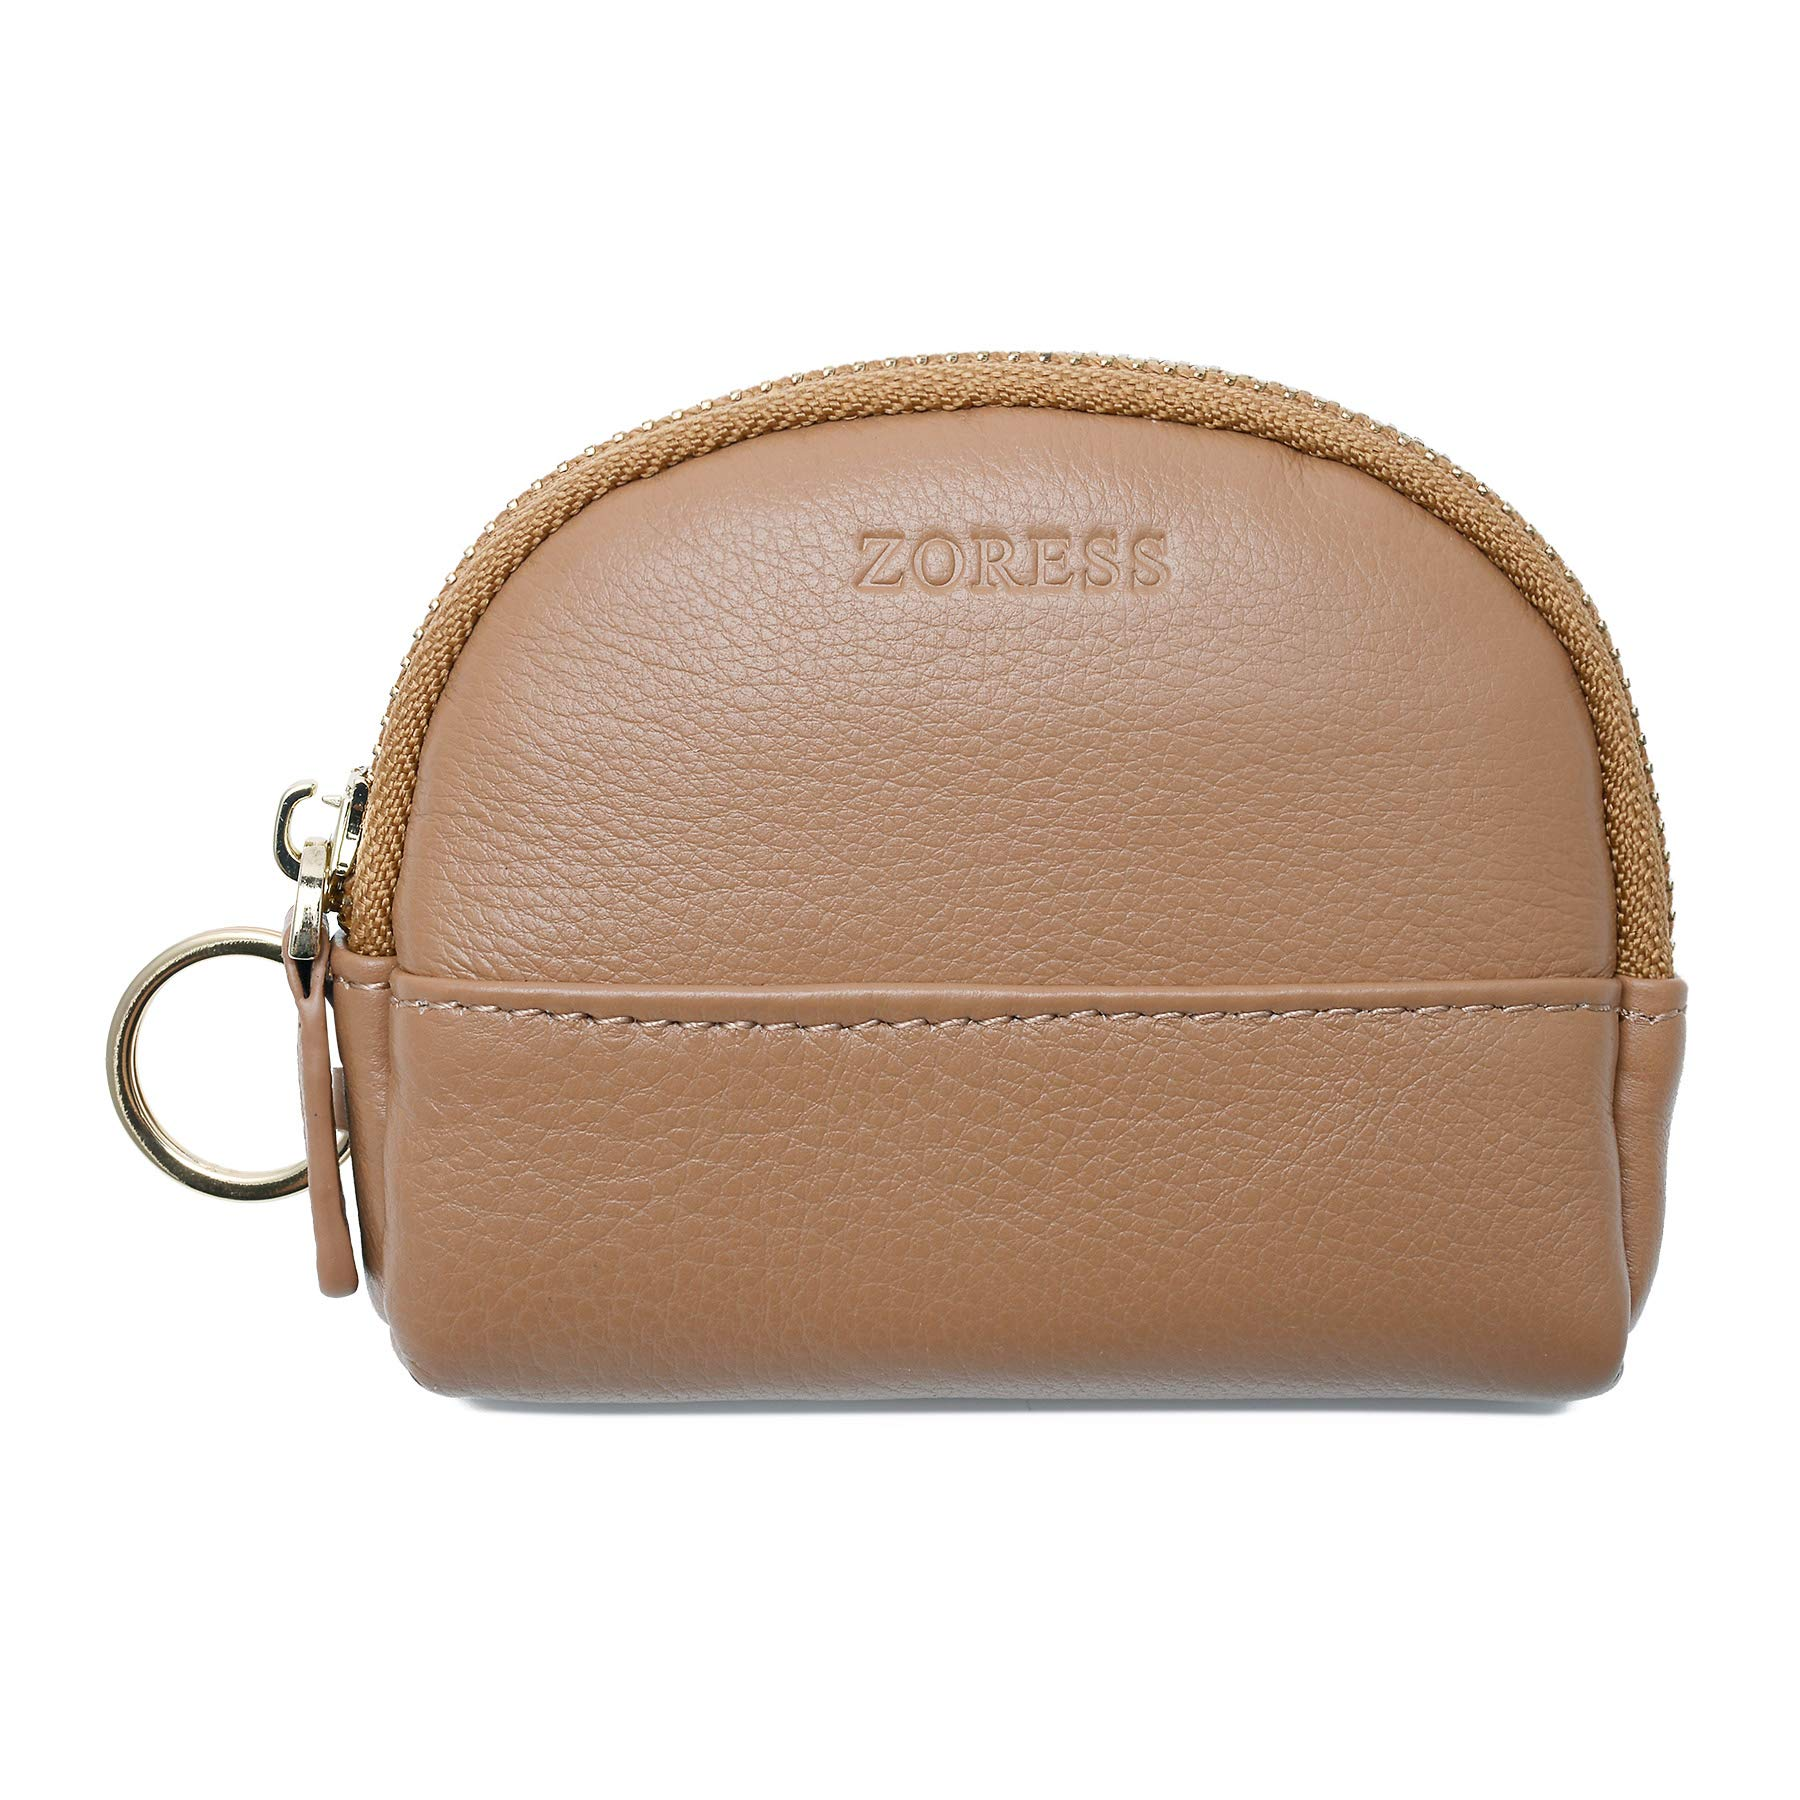 ZORESS Mini Soft Leather Coin Purse Card Holder with Key Chain Shell shape wallet (Brown)